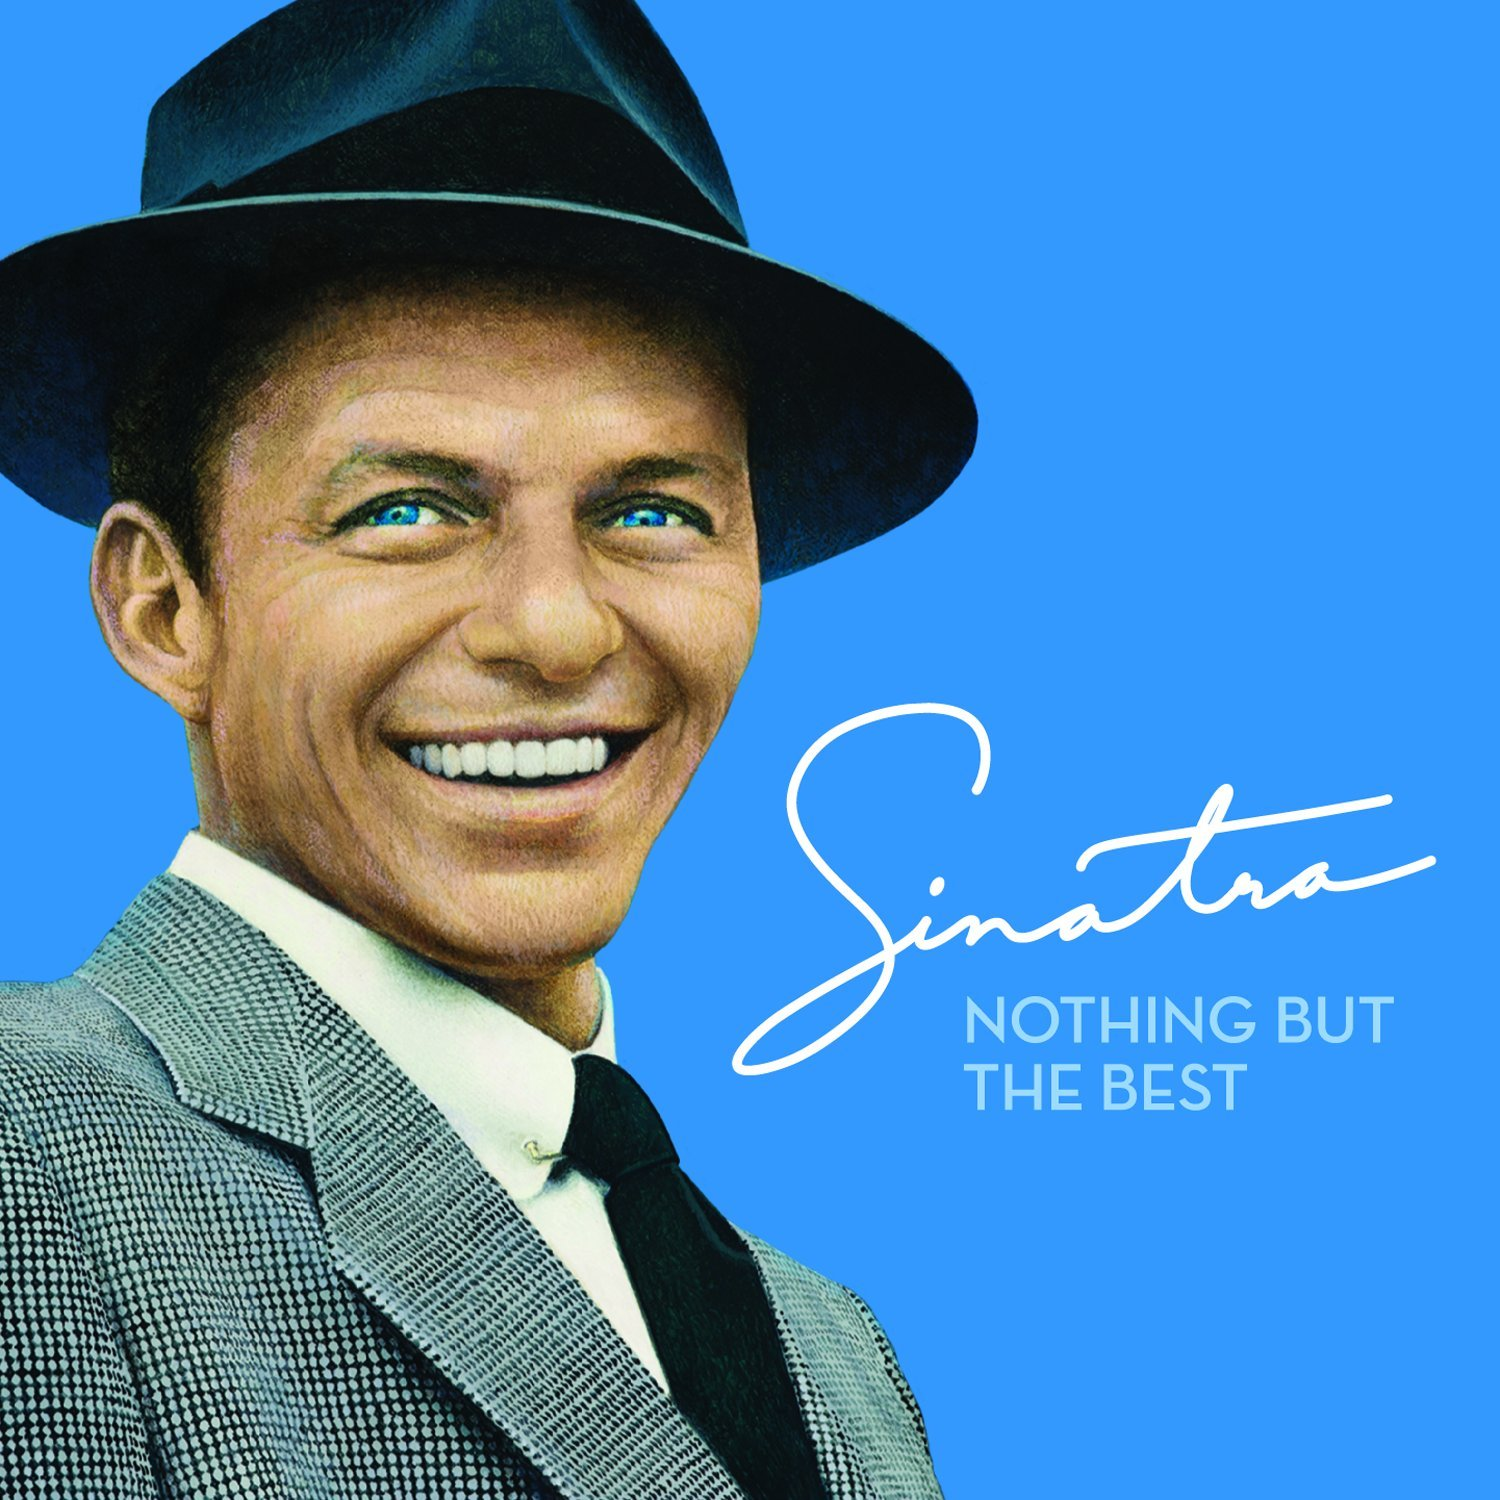 Frank Sinatra - Nothing But The Best (2008) [FLAC] Download